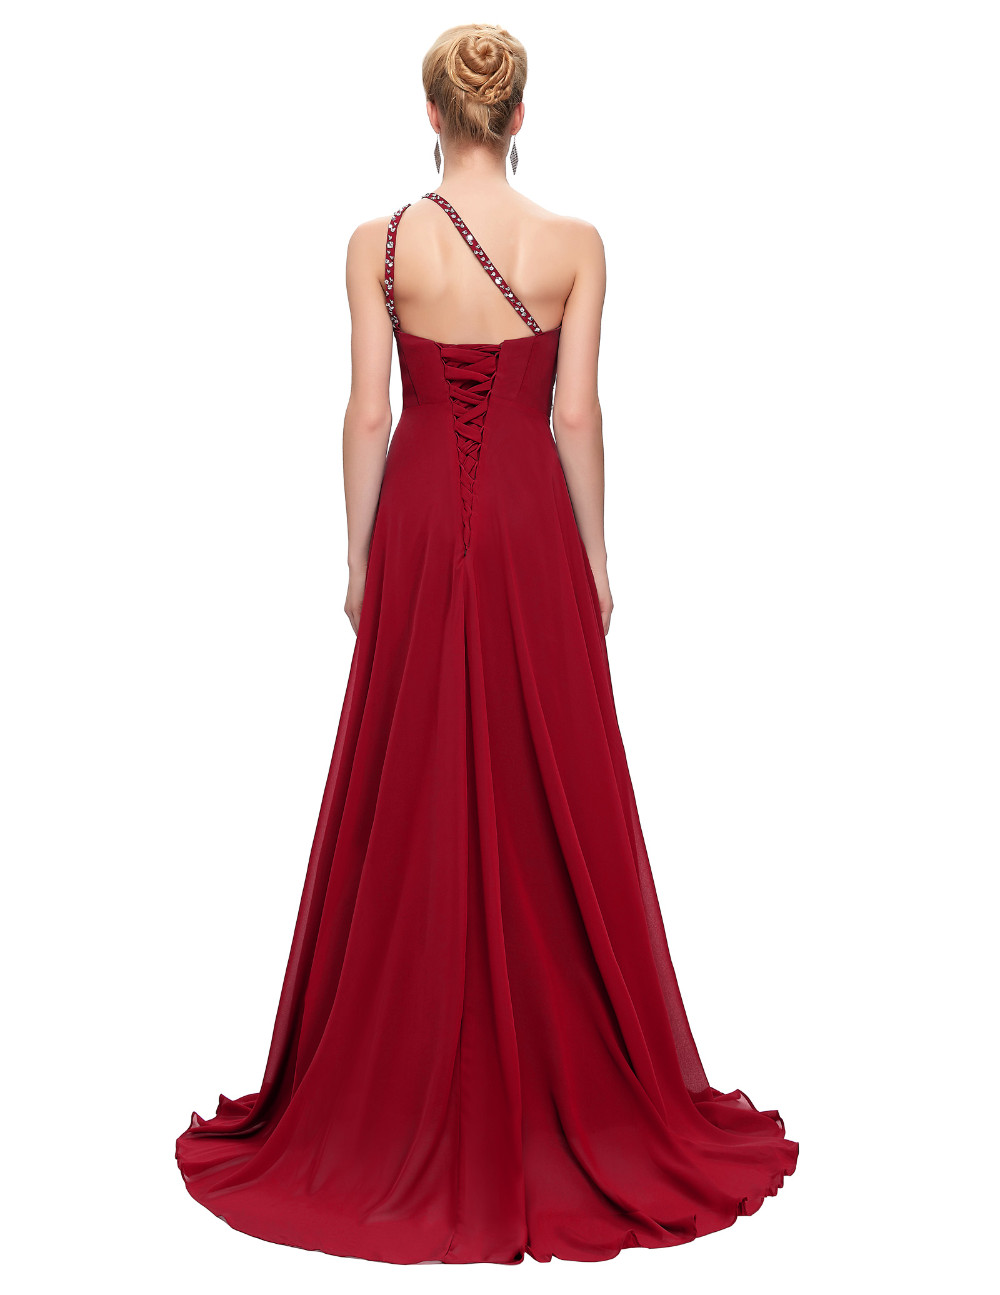 Elegant One Shoulder Long Bridesmaid Dress 16